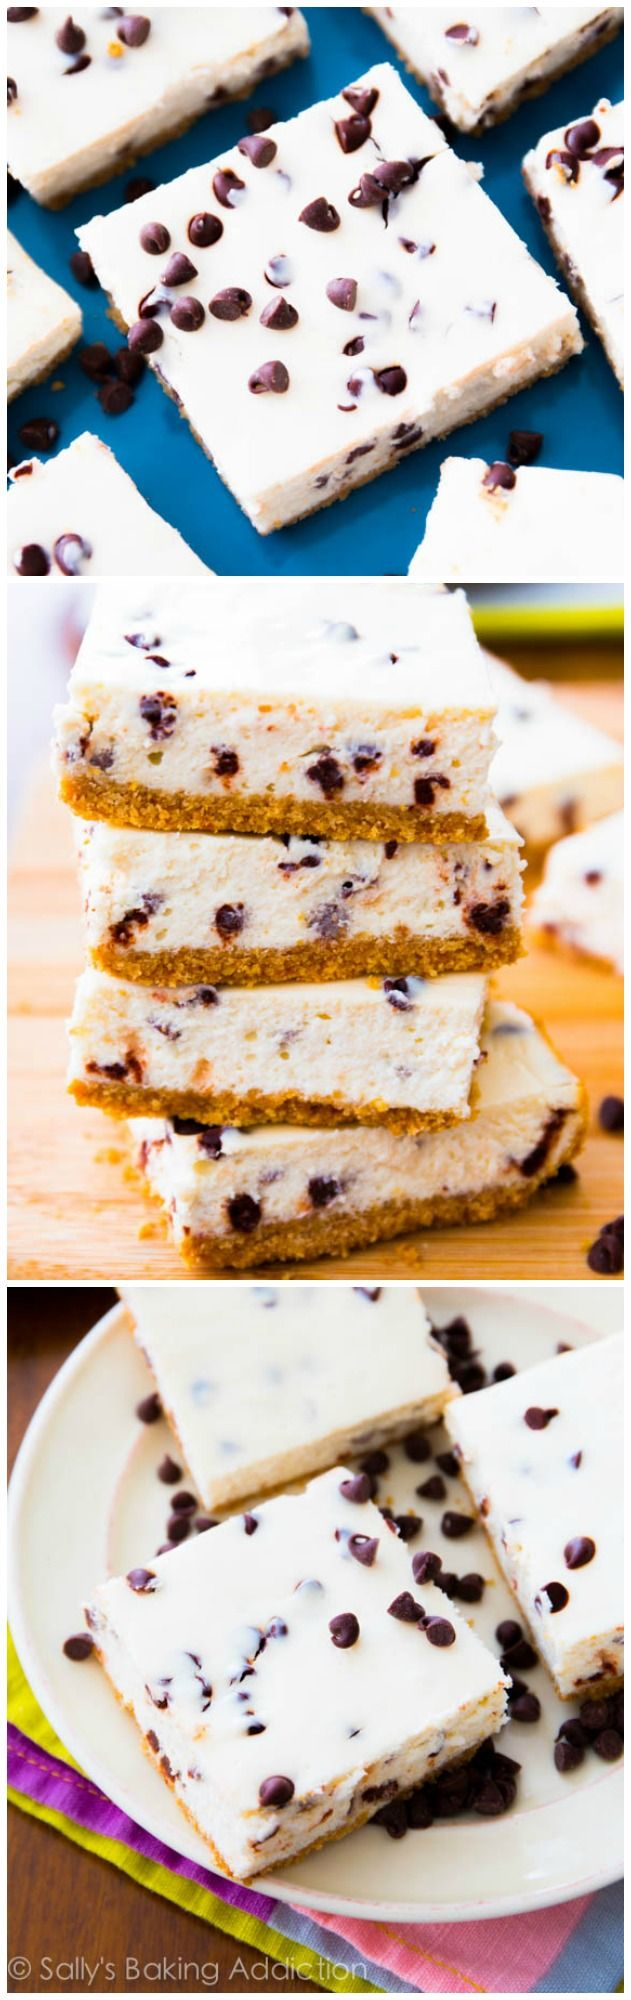 Skinny Chocolate Chip Cheesecake Bars - you won't even know they're light! Only 128 calories each!